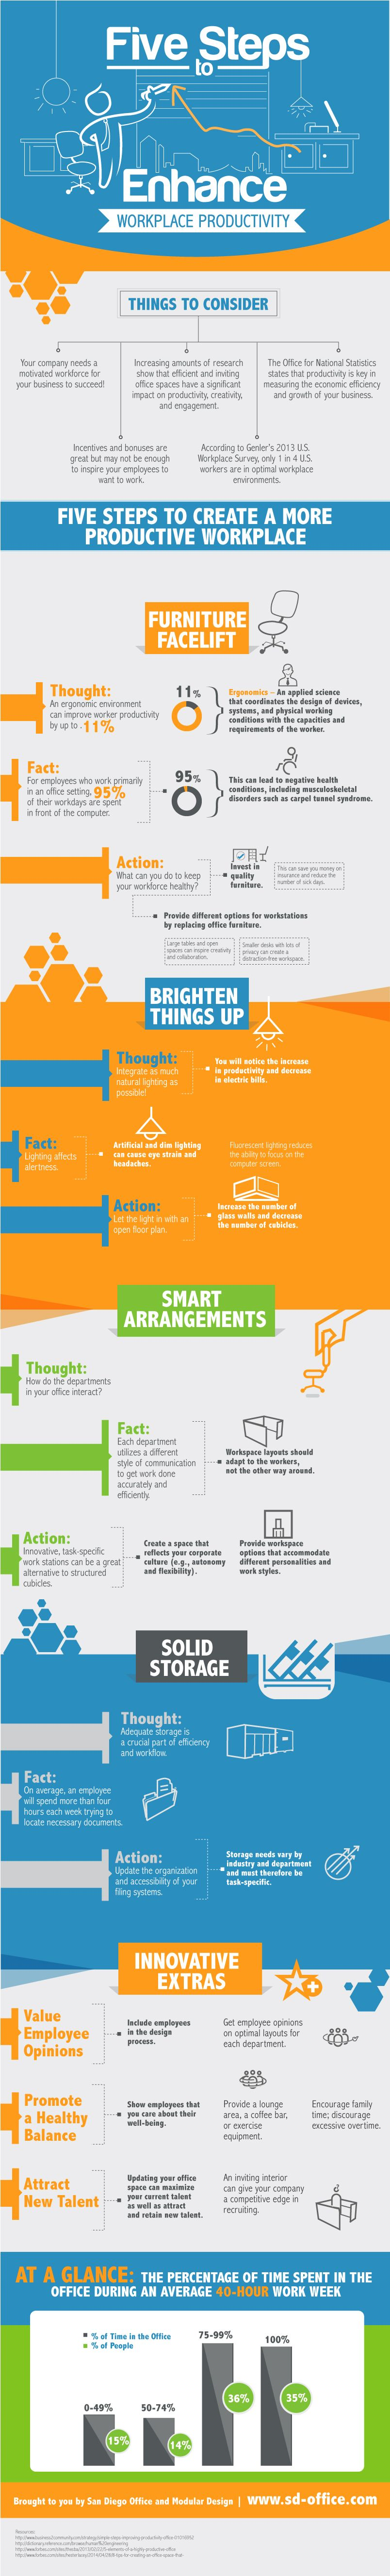 Enhance Workplace Productivity Infographic Sd Office